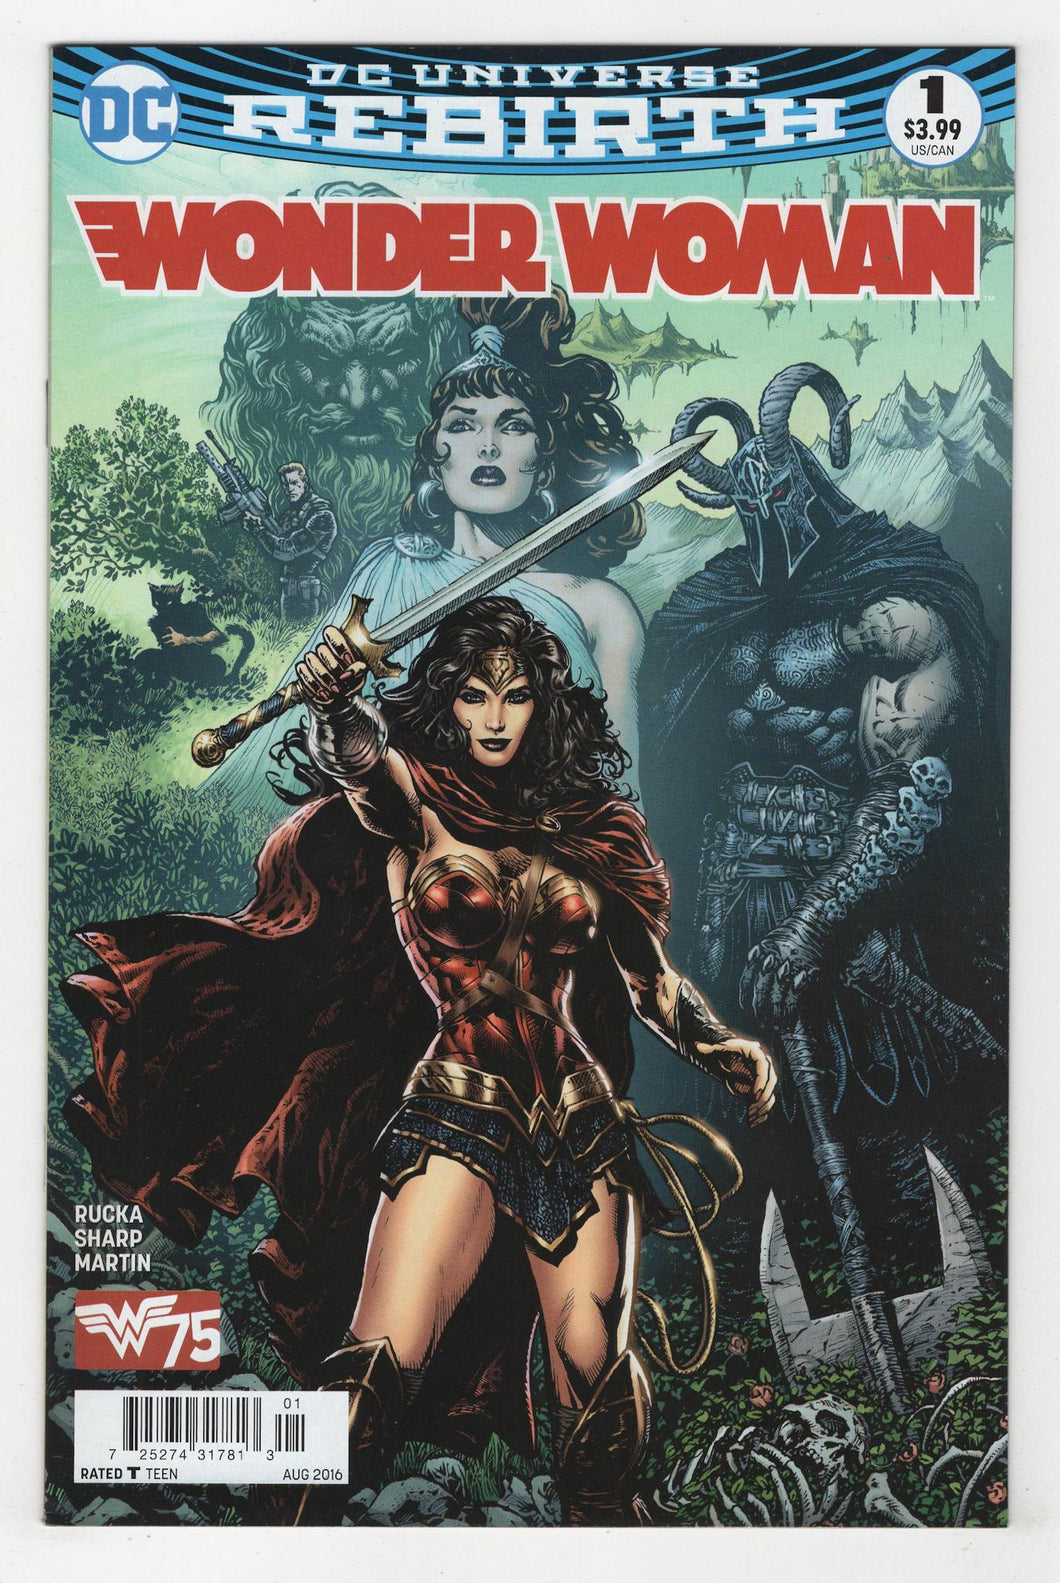 Wonder Woman #1 Cover Front